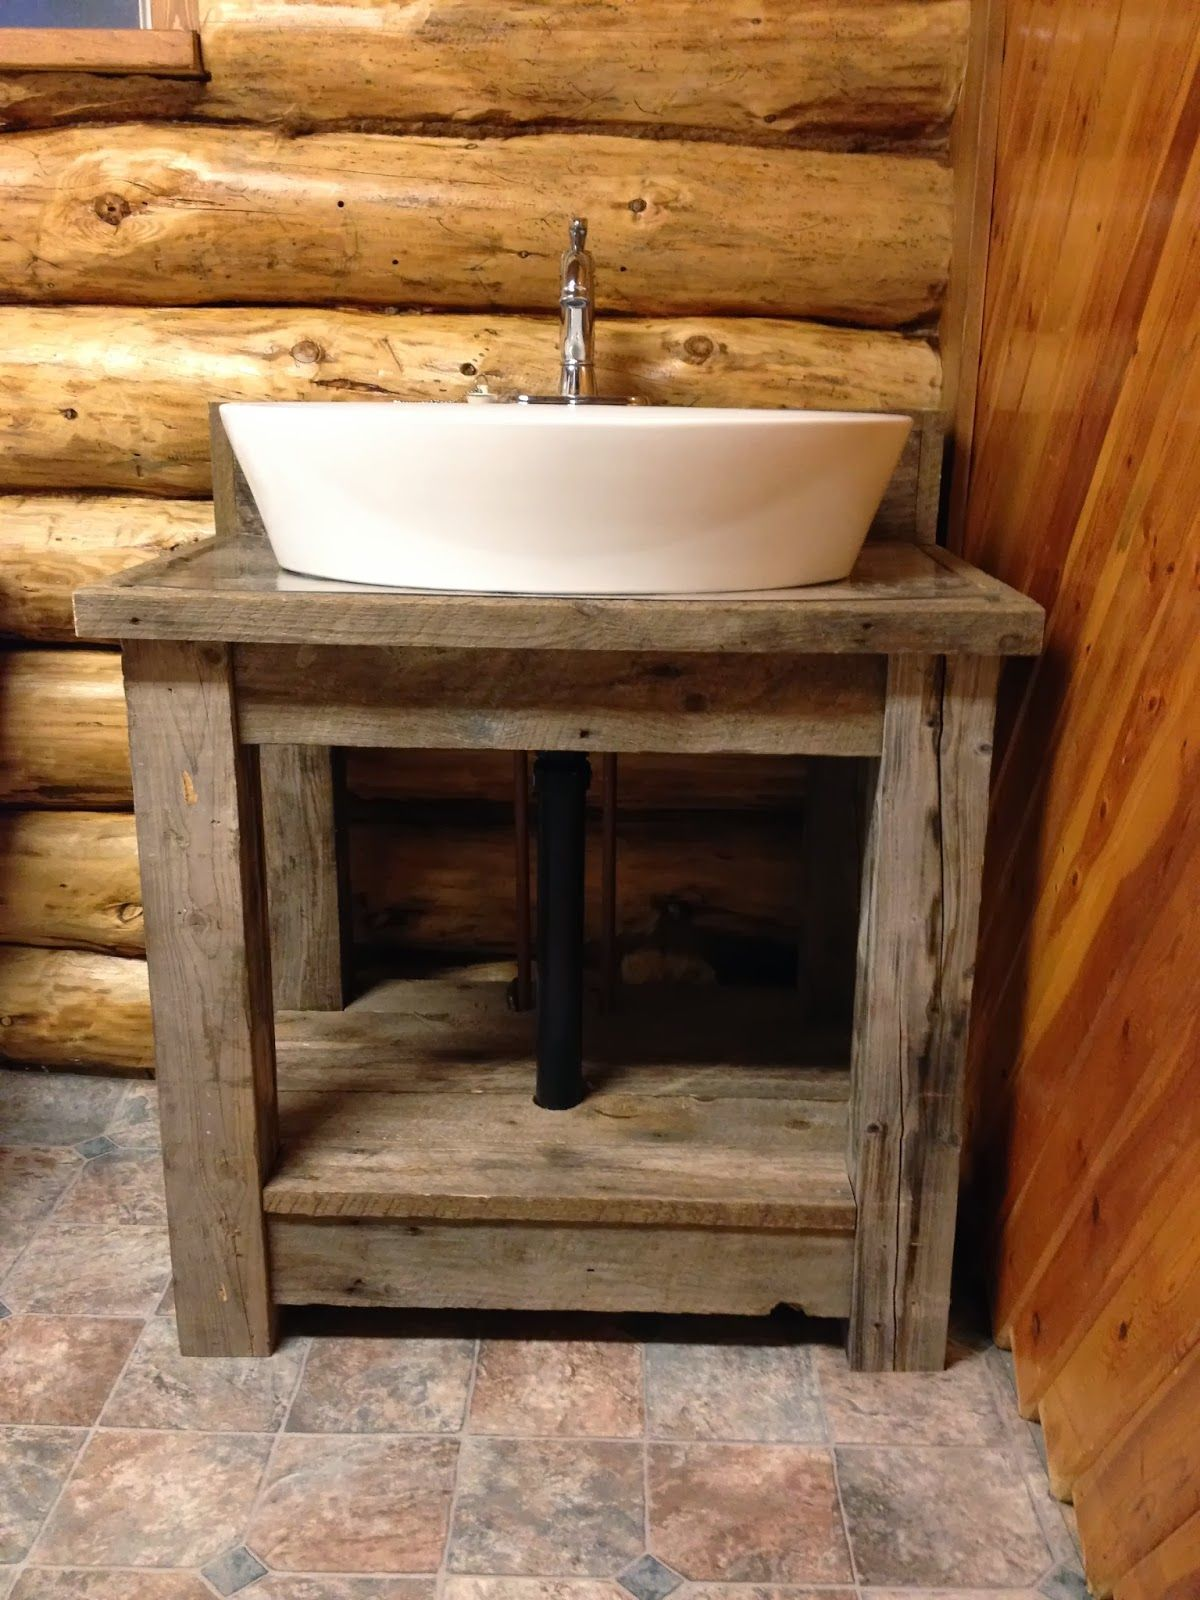 Rustic Reclaimed Wood Open Shelf Vanity With White Porcelain Vessel ...